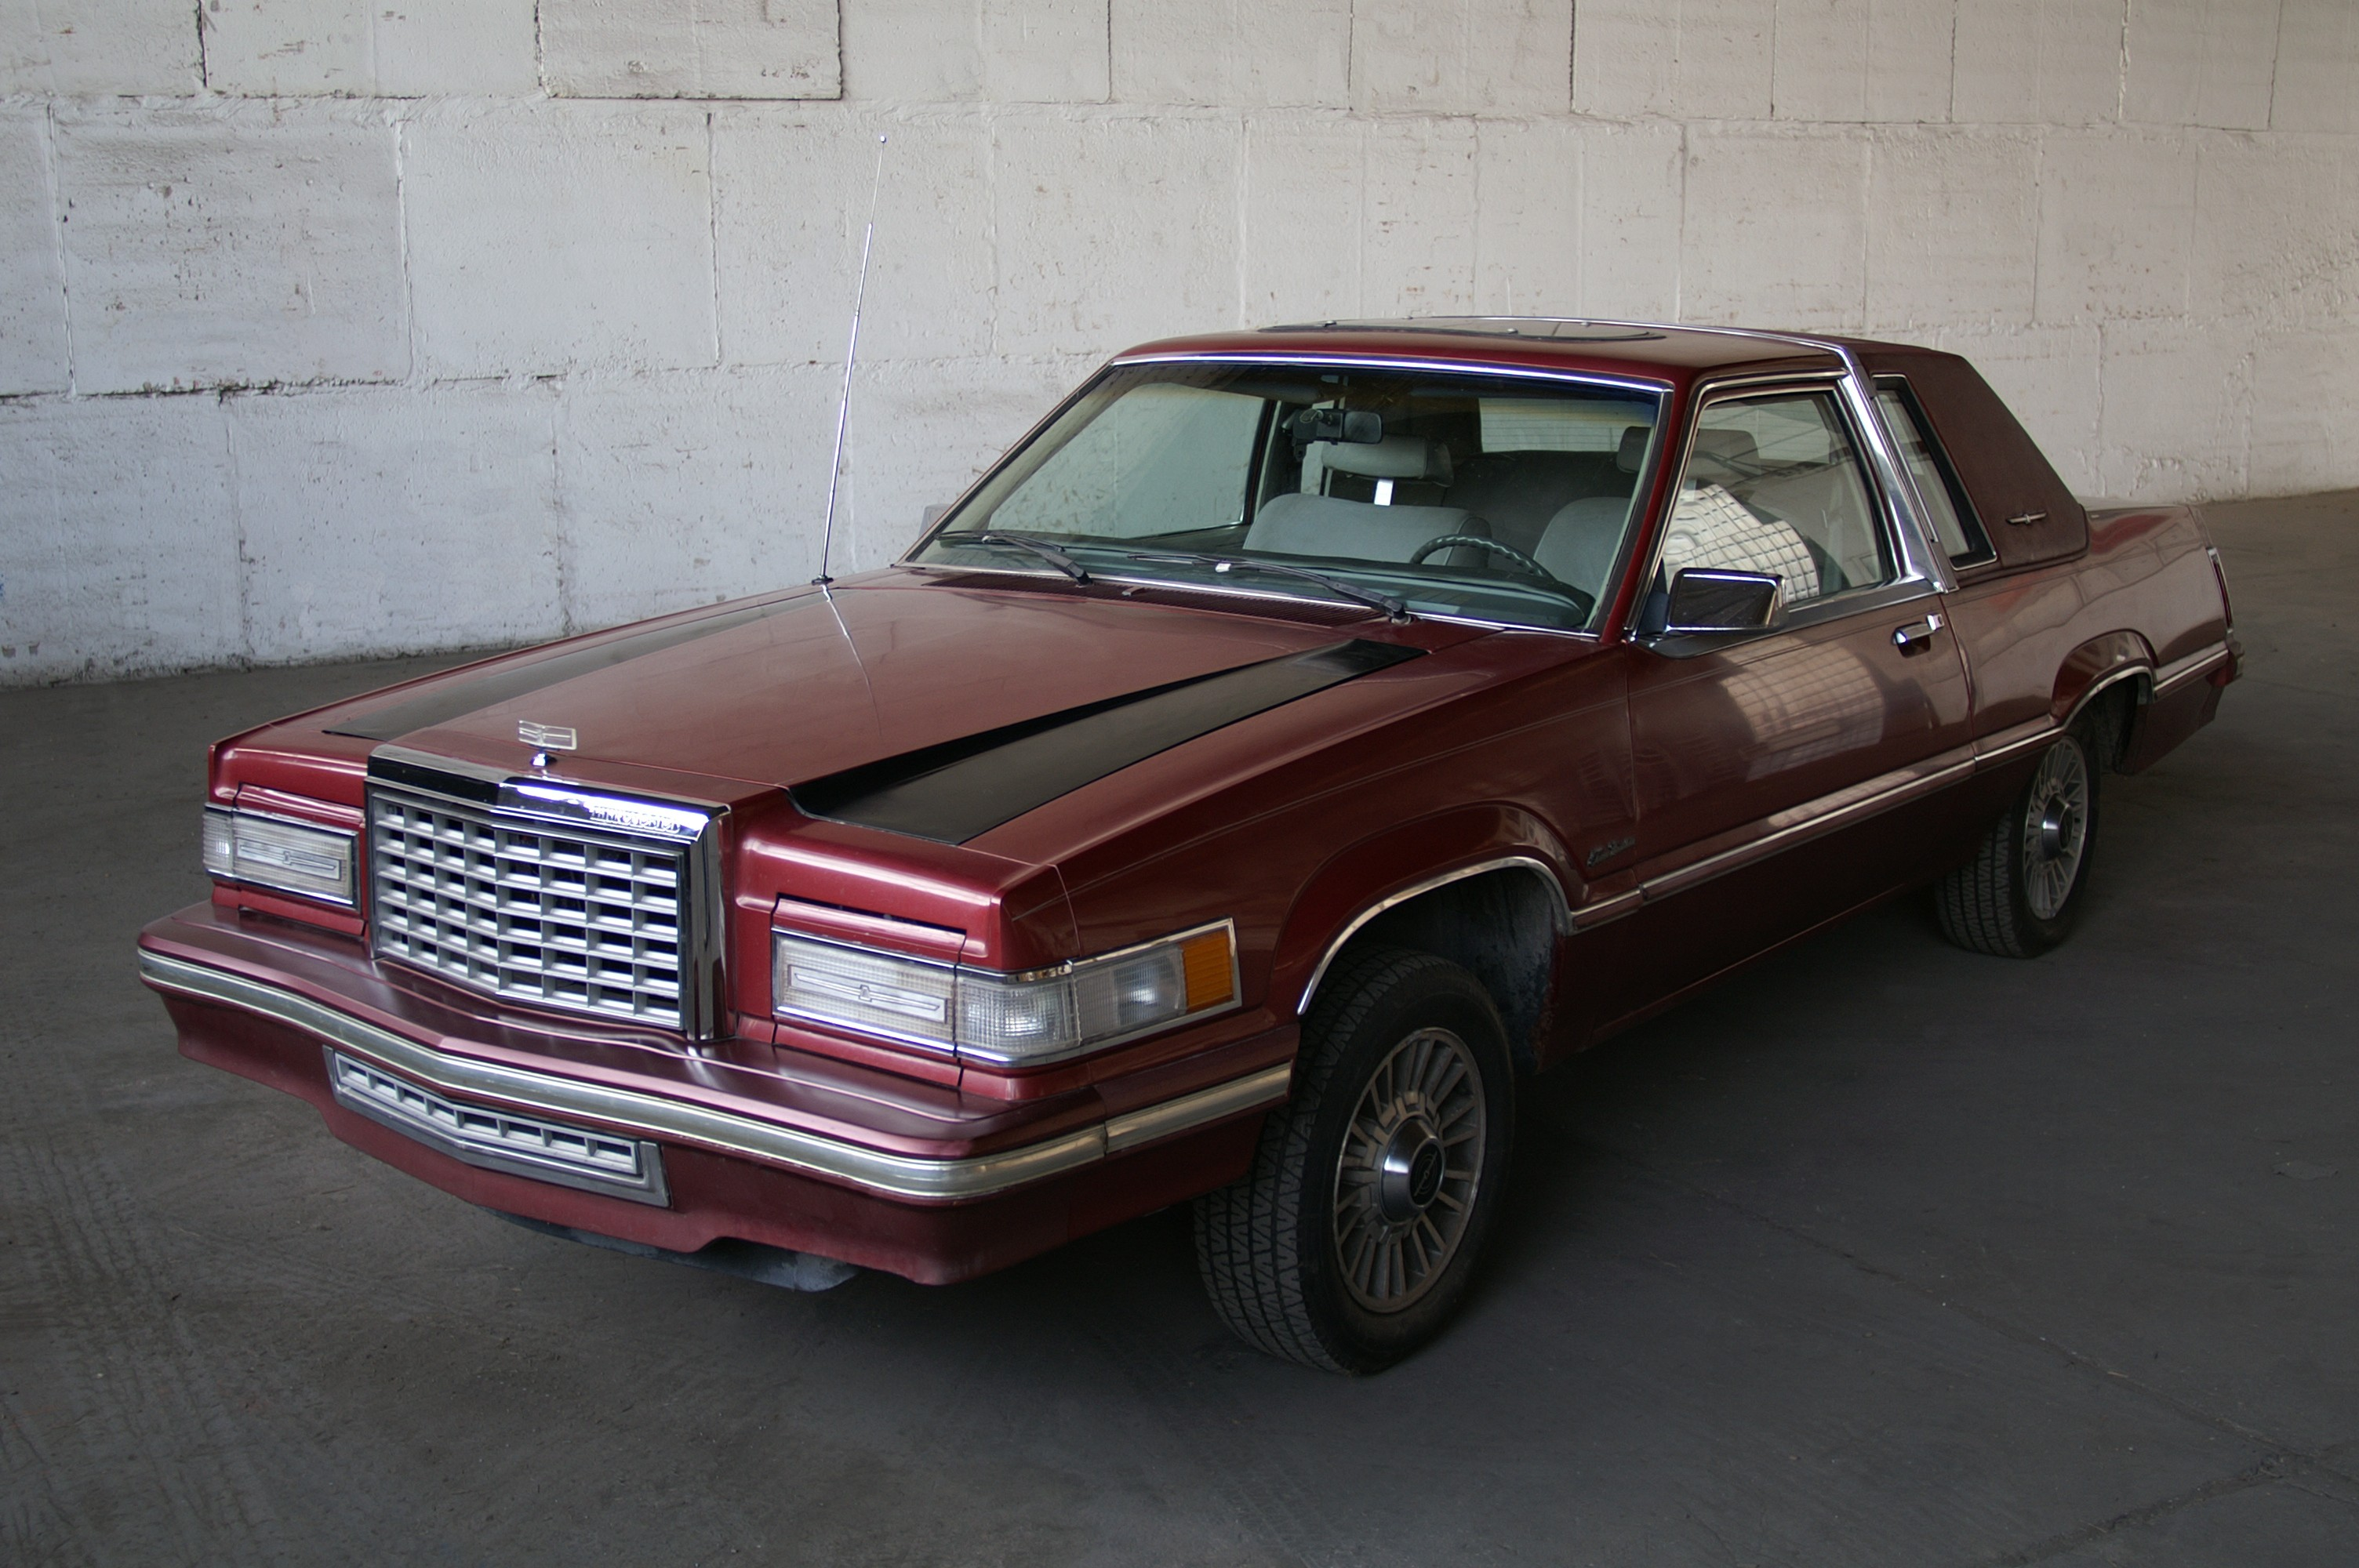 1980 Ford Cougar #9